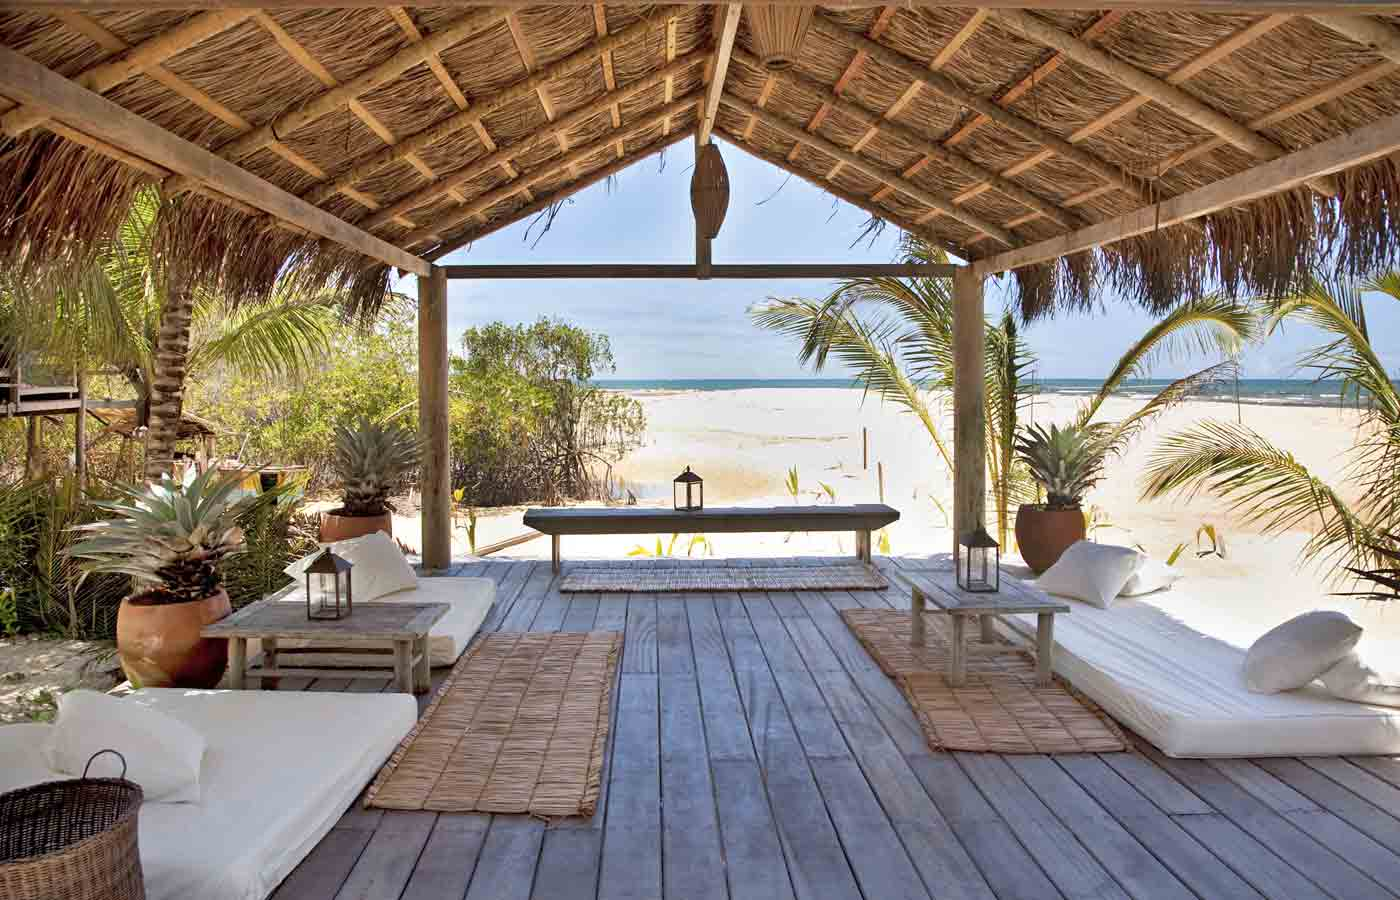 UXUA Casa - Luxury holidays to Trancoso, Brazil